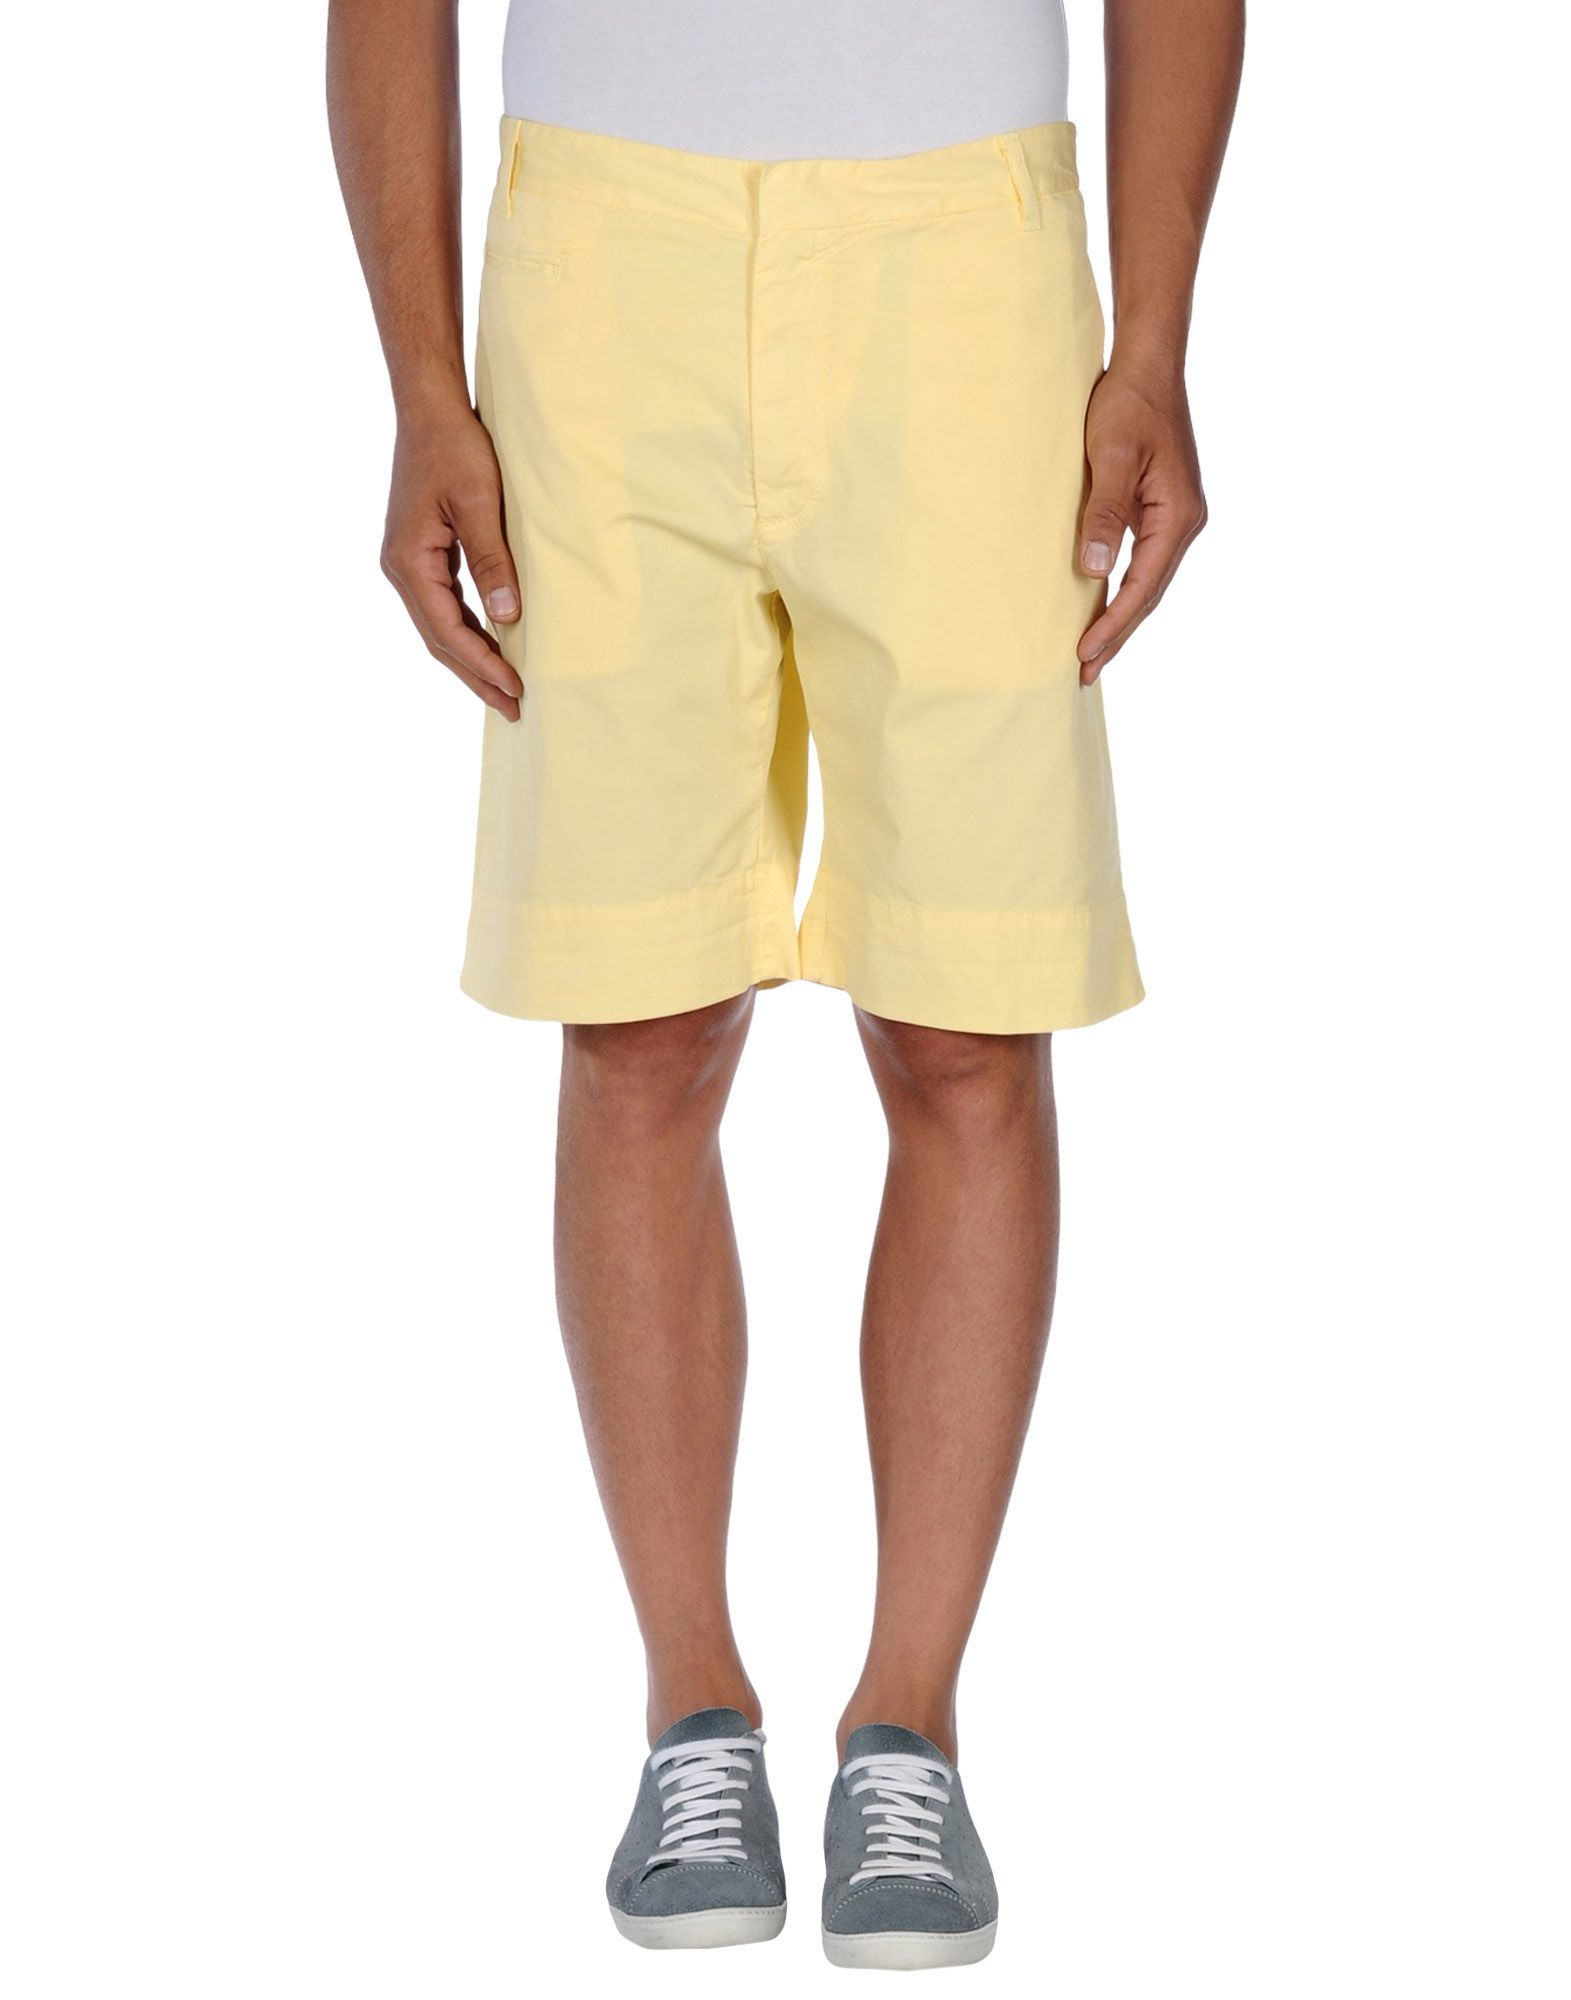 Fred perry Bermuda Shorts in Yellow for Men